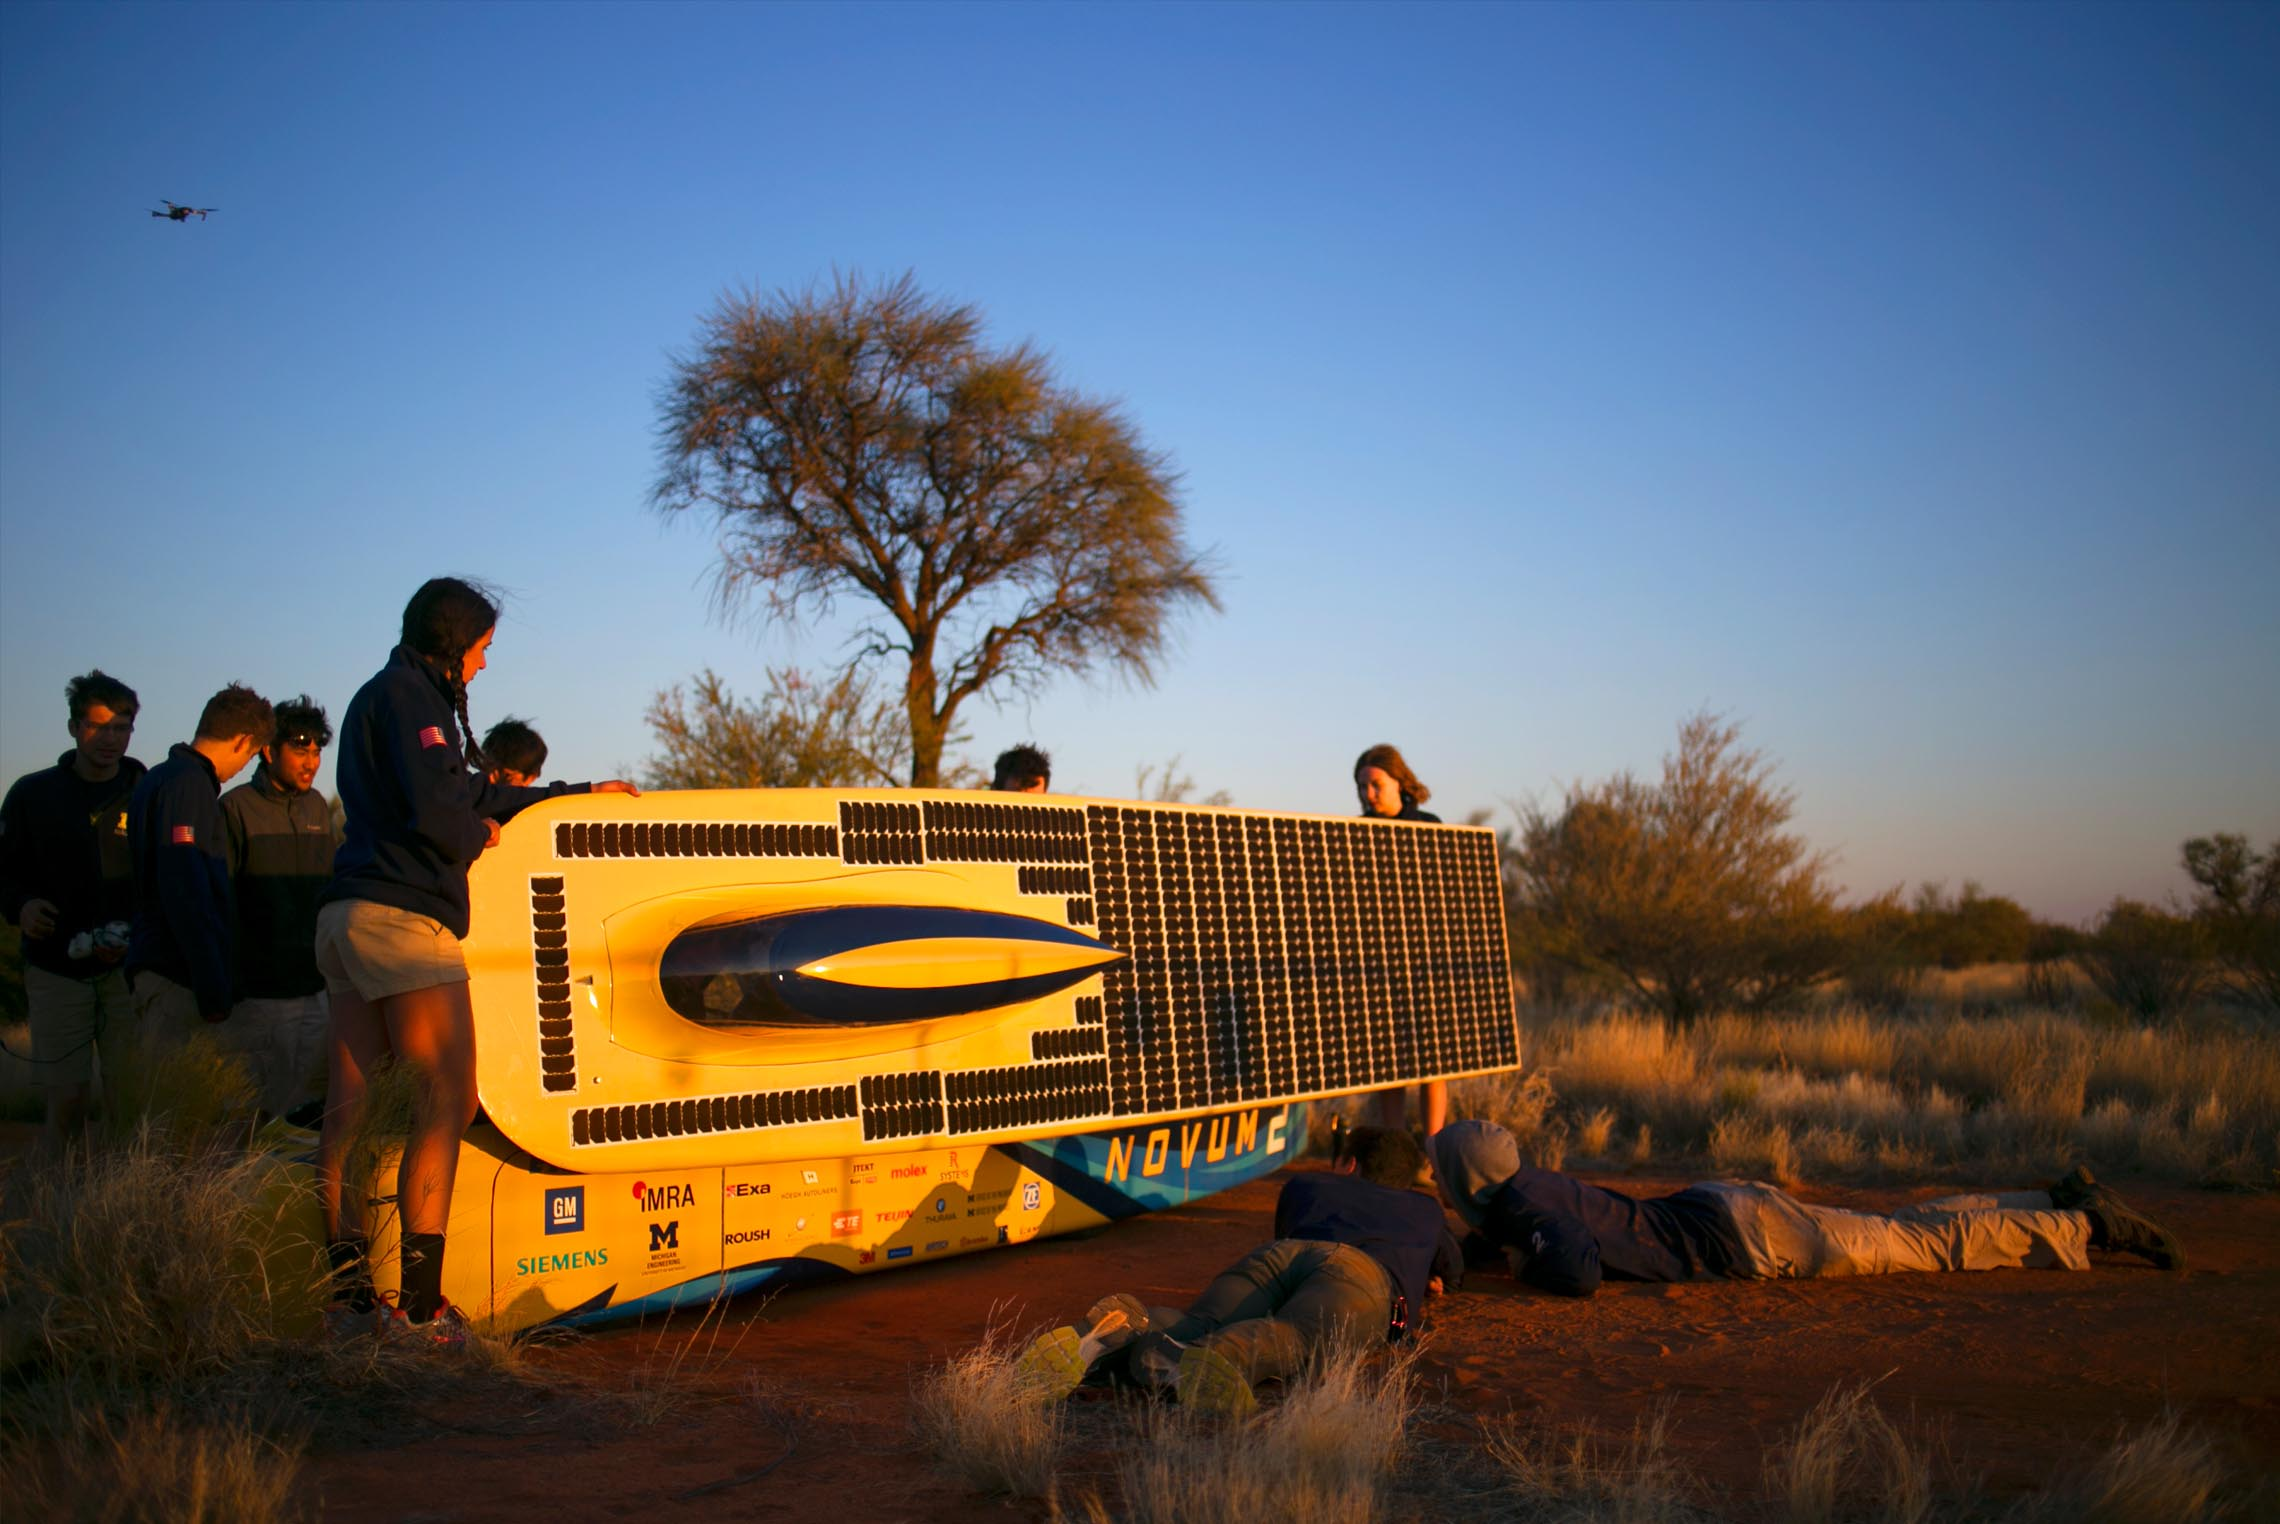 The team charges the car's battery in the setting Australian sun.